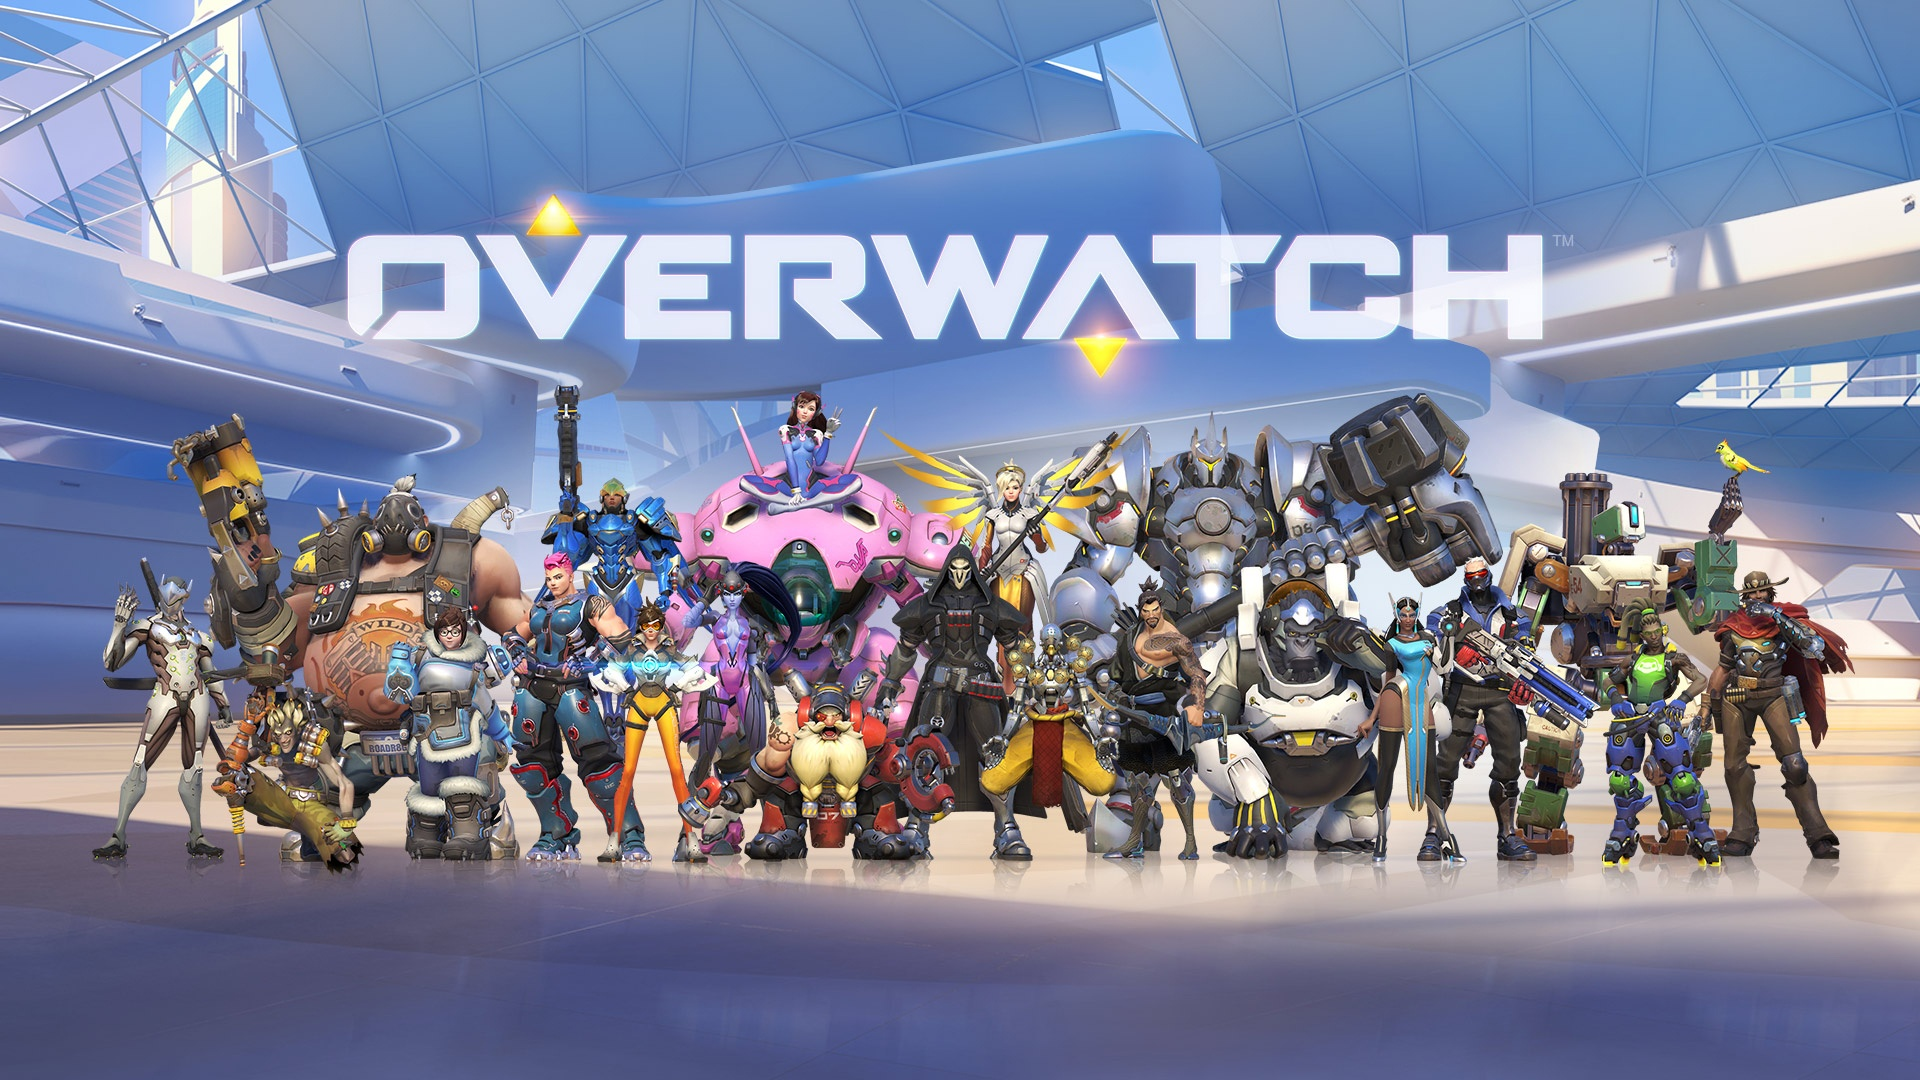 Overwatch Game All Heroes Hd Games 4k Wallpapers Images